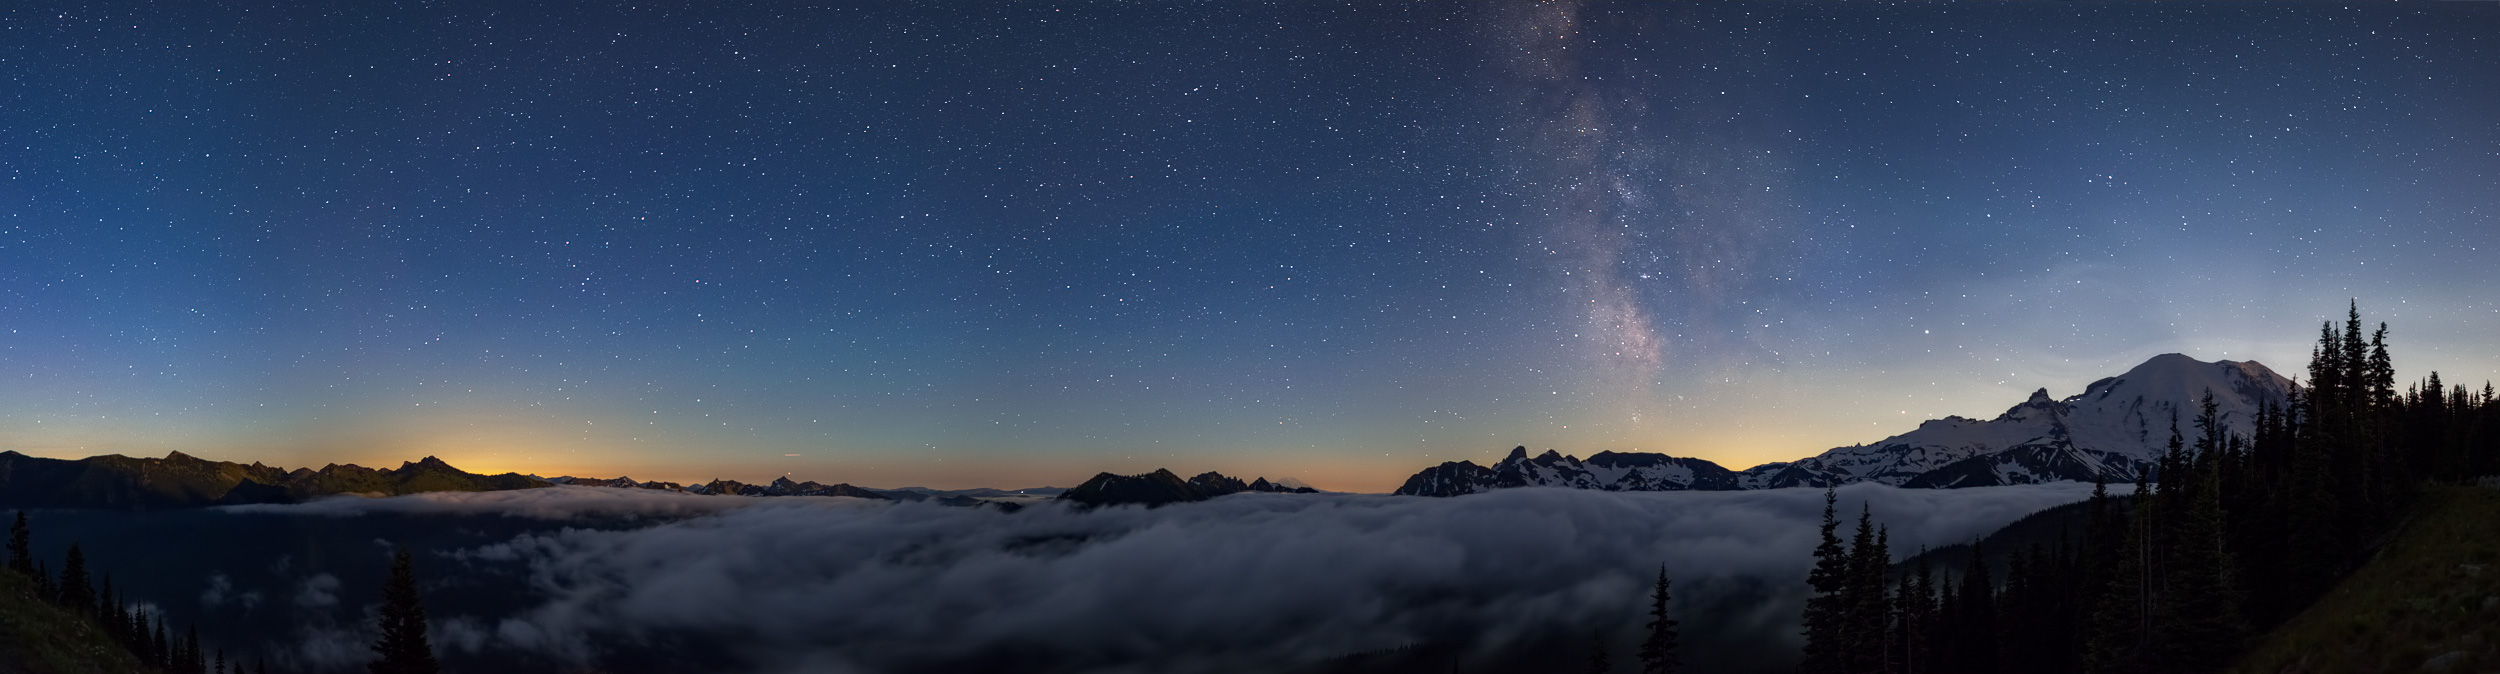 The Milky Way at Mount Rainier National Park. Took this just after the moon went behind Rainier, with most of the cloud bank still intact.